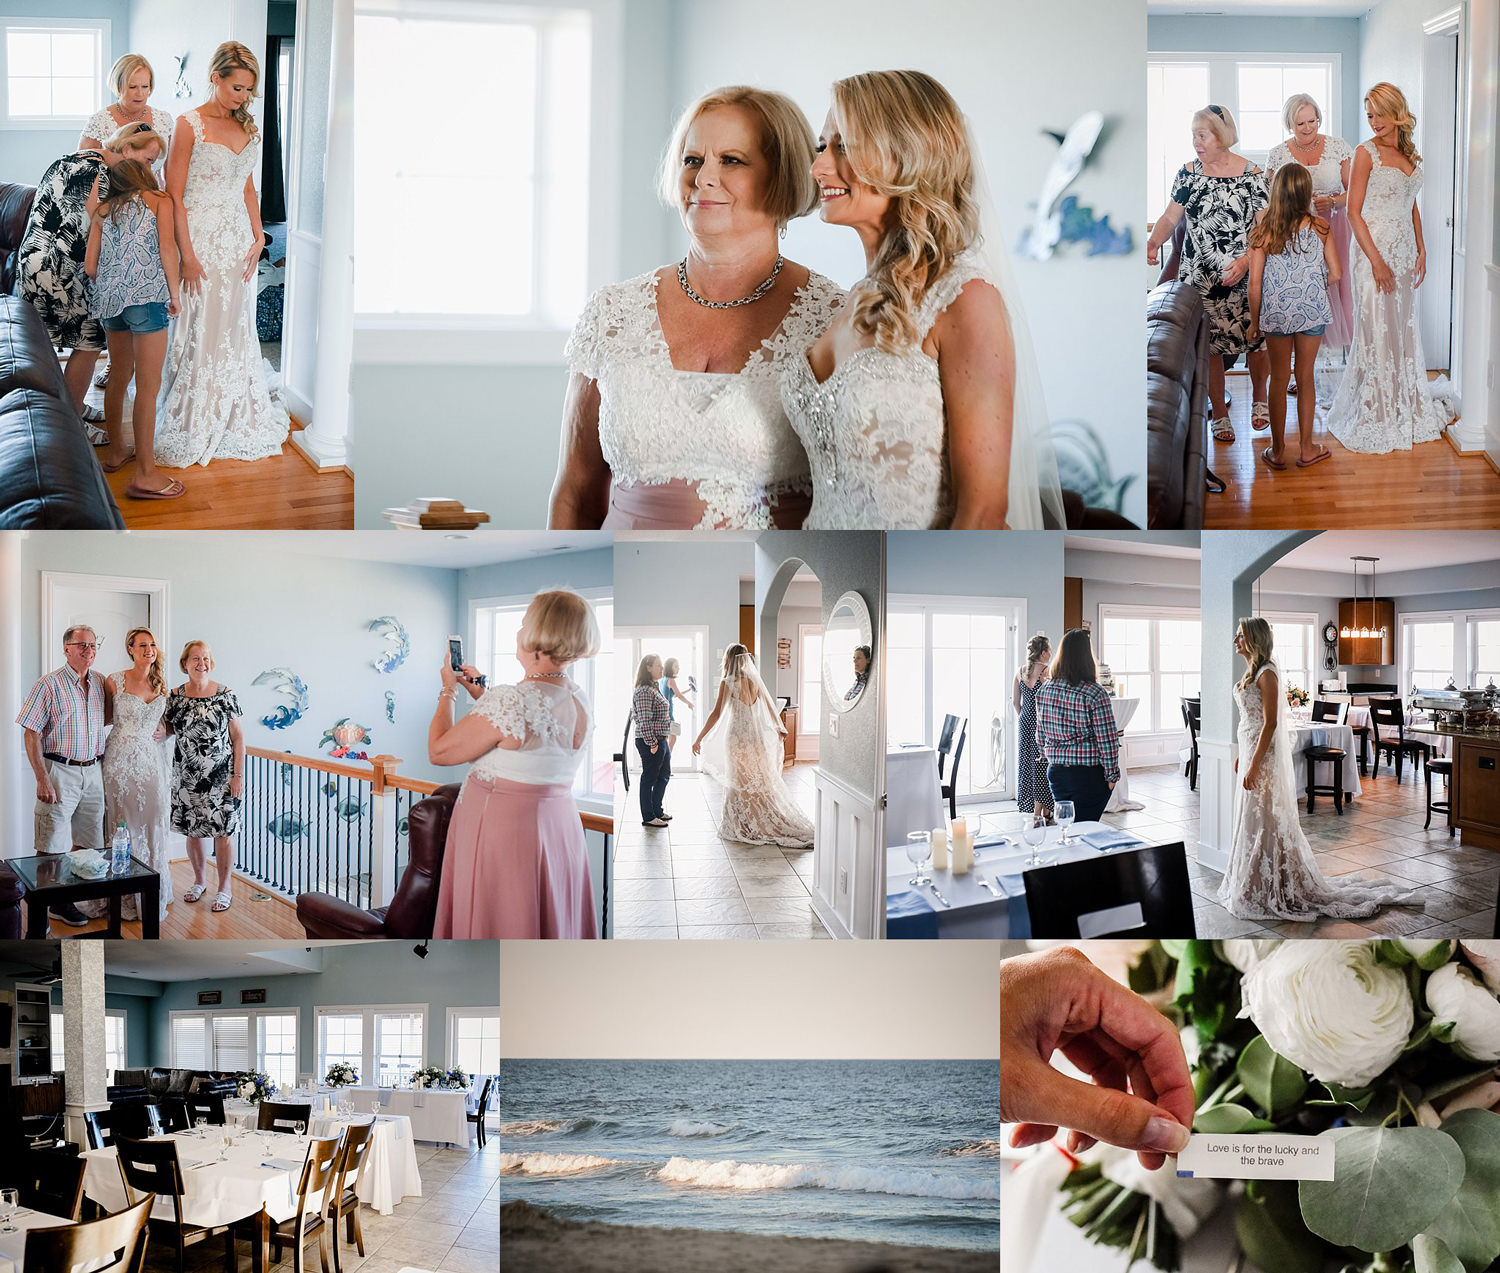 beach-wedding-inspiration-virginia-beach-wedding-melissa-bliss-photography-VA-wedding-photographers.jpg